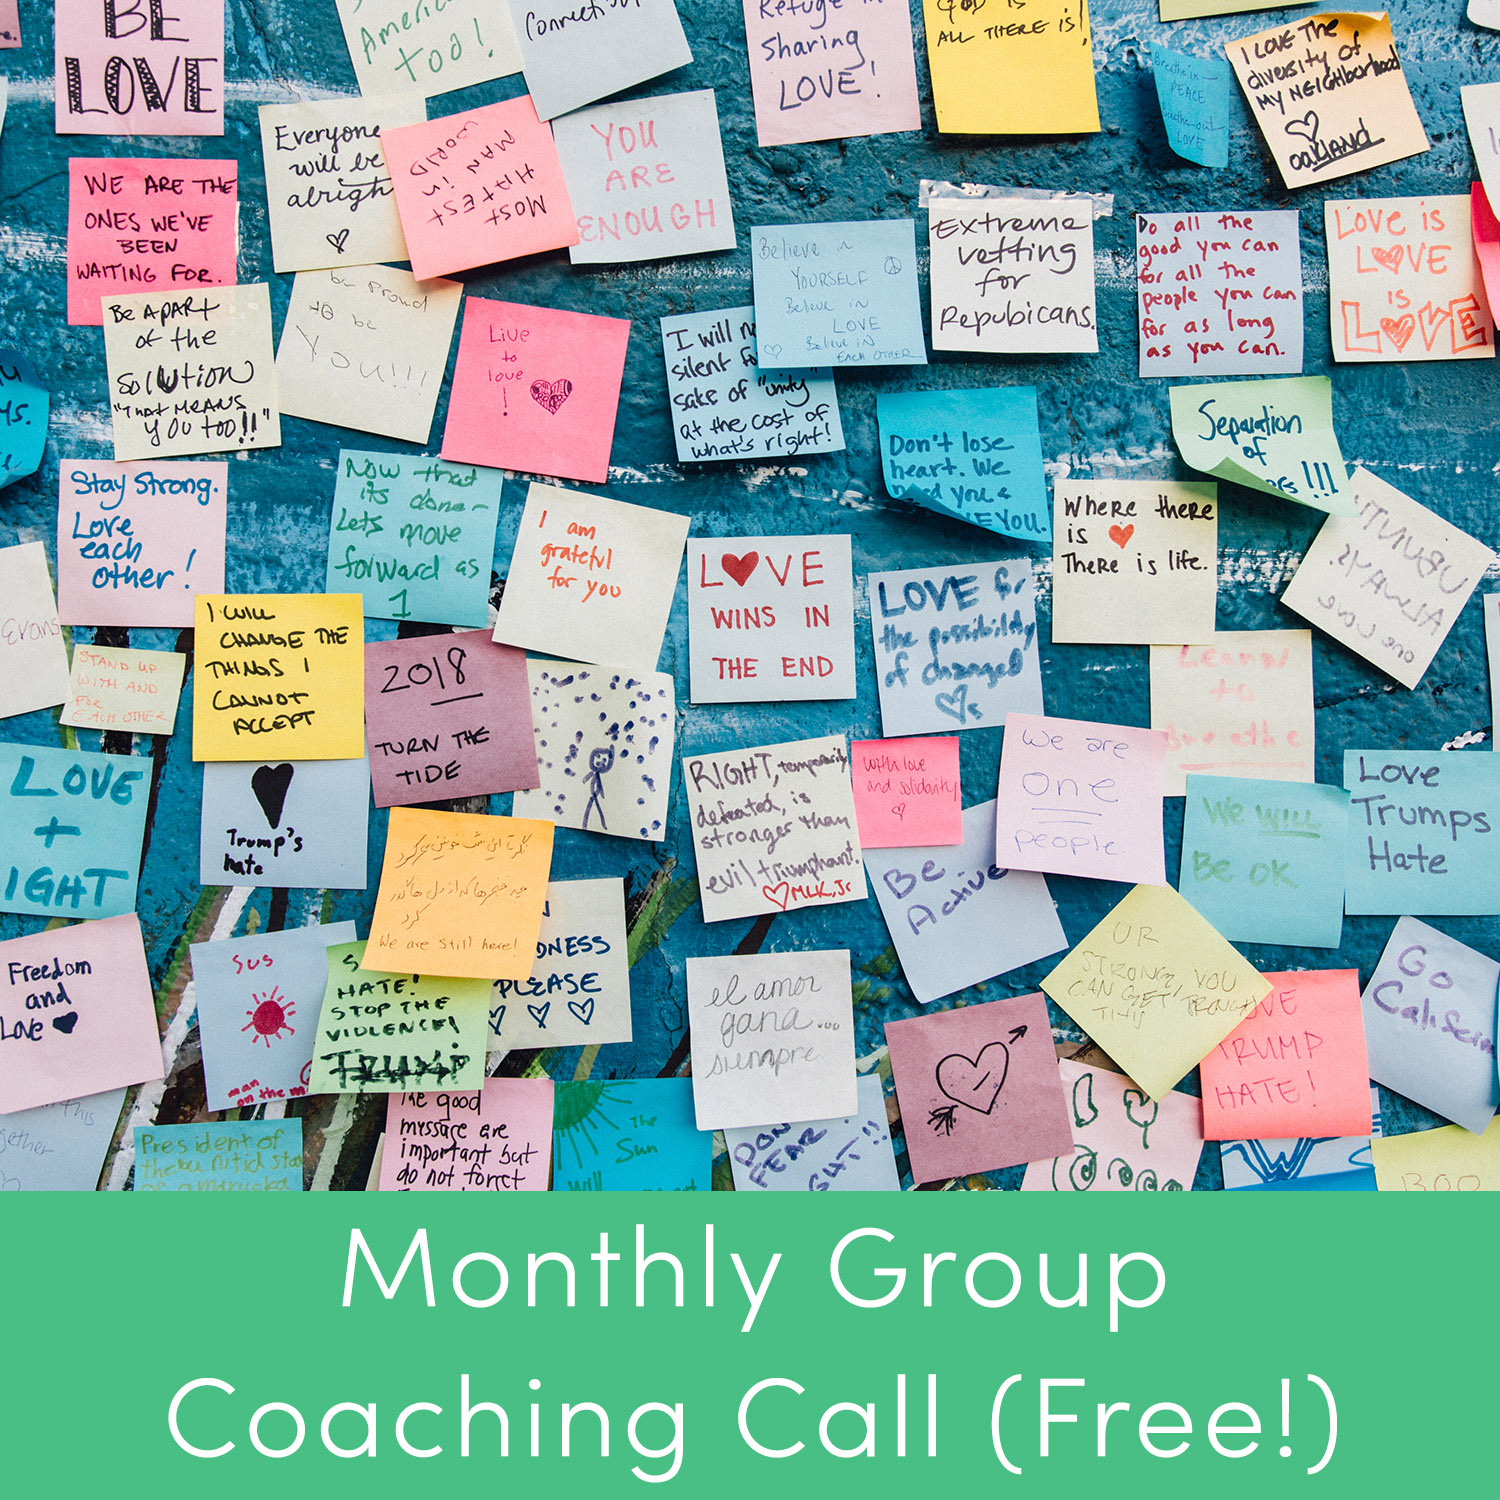 Monthly group coaching call.jpg